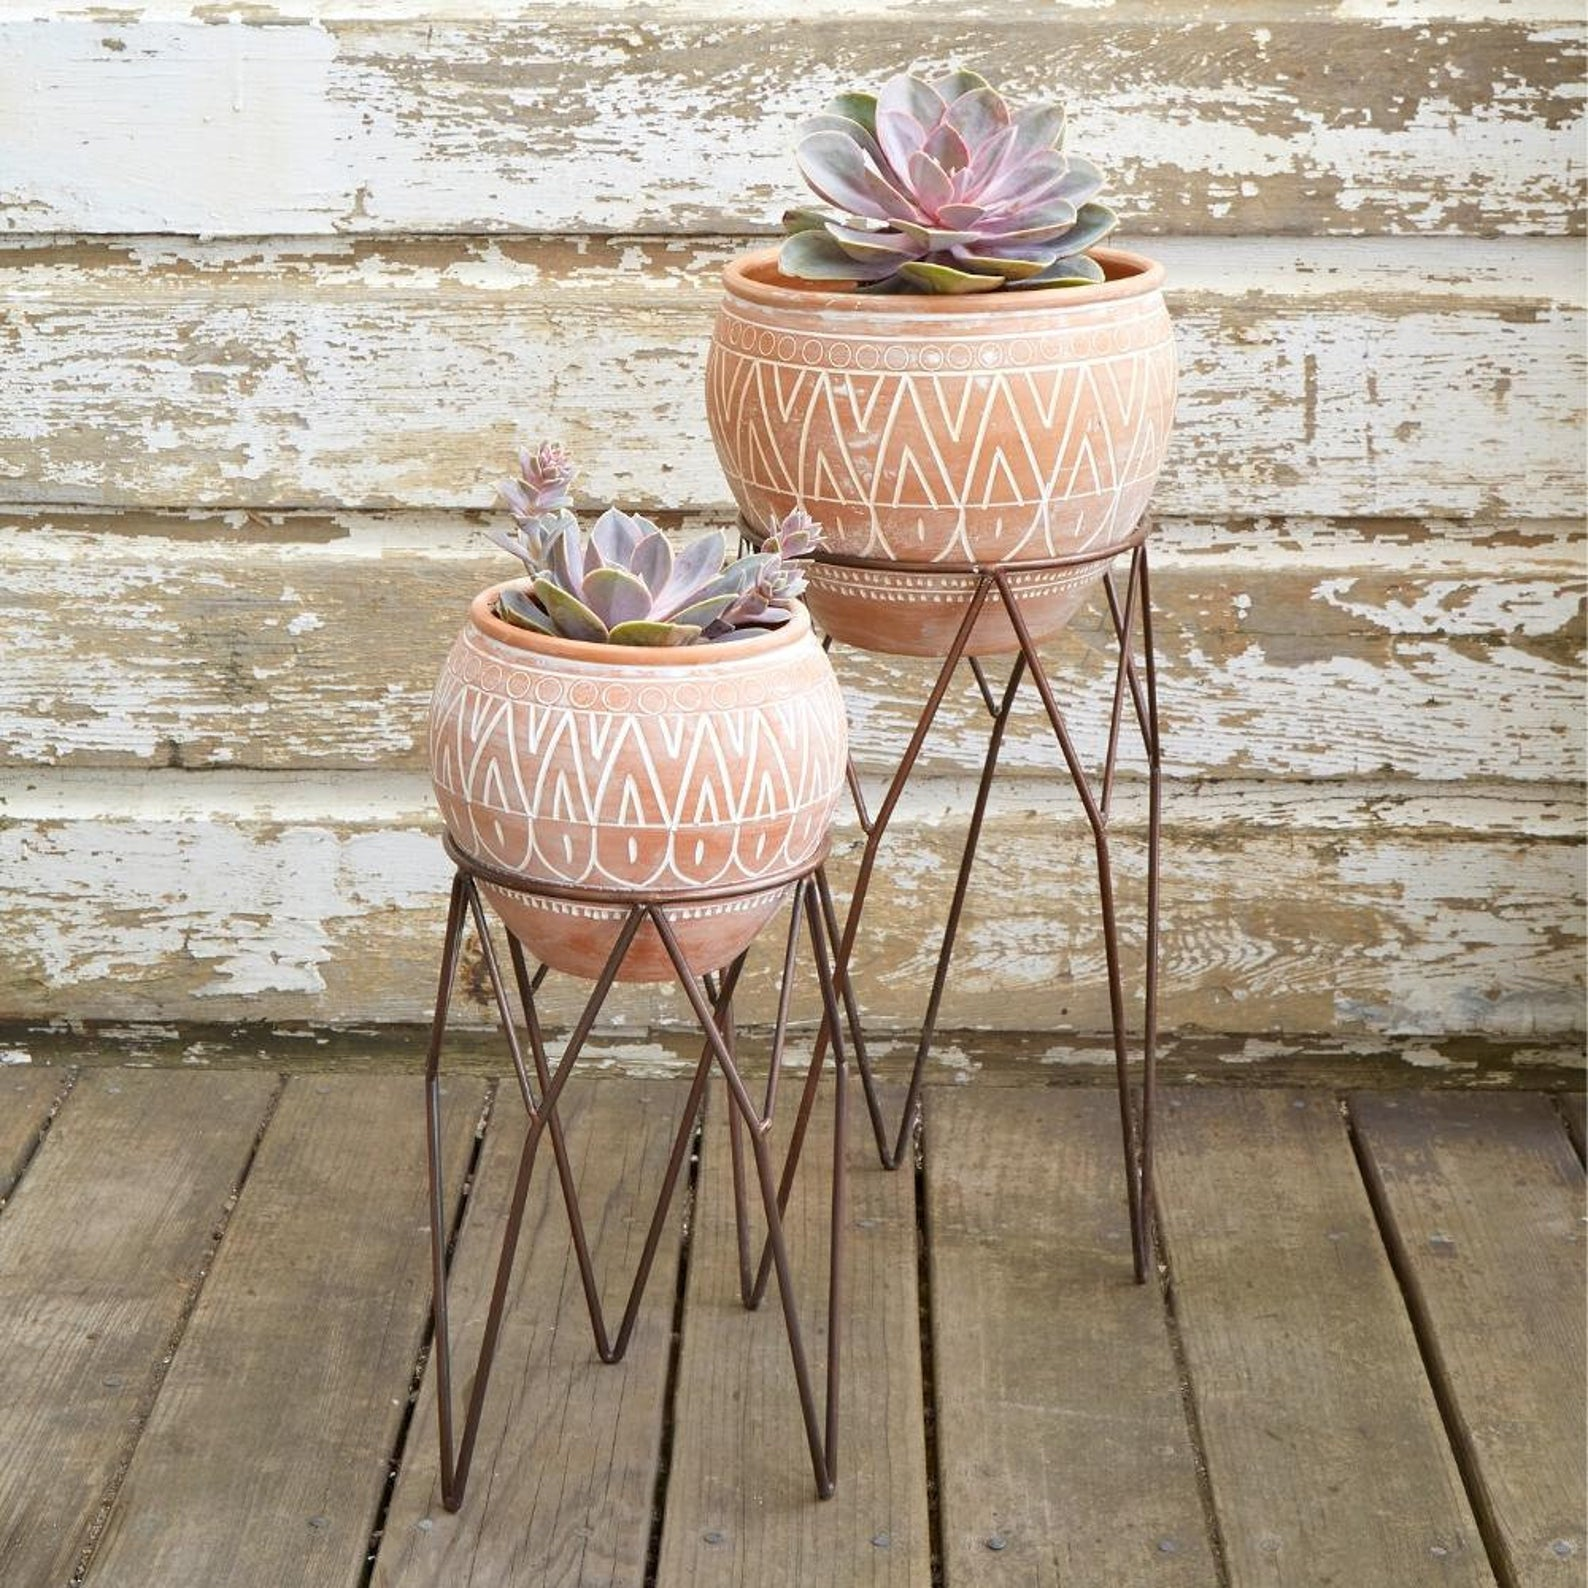 Terracotta pots with metal stands